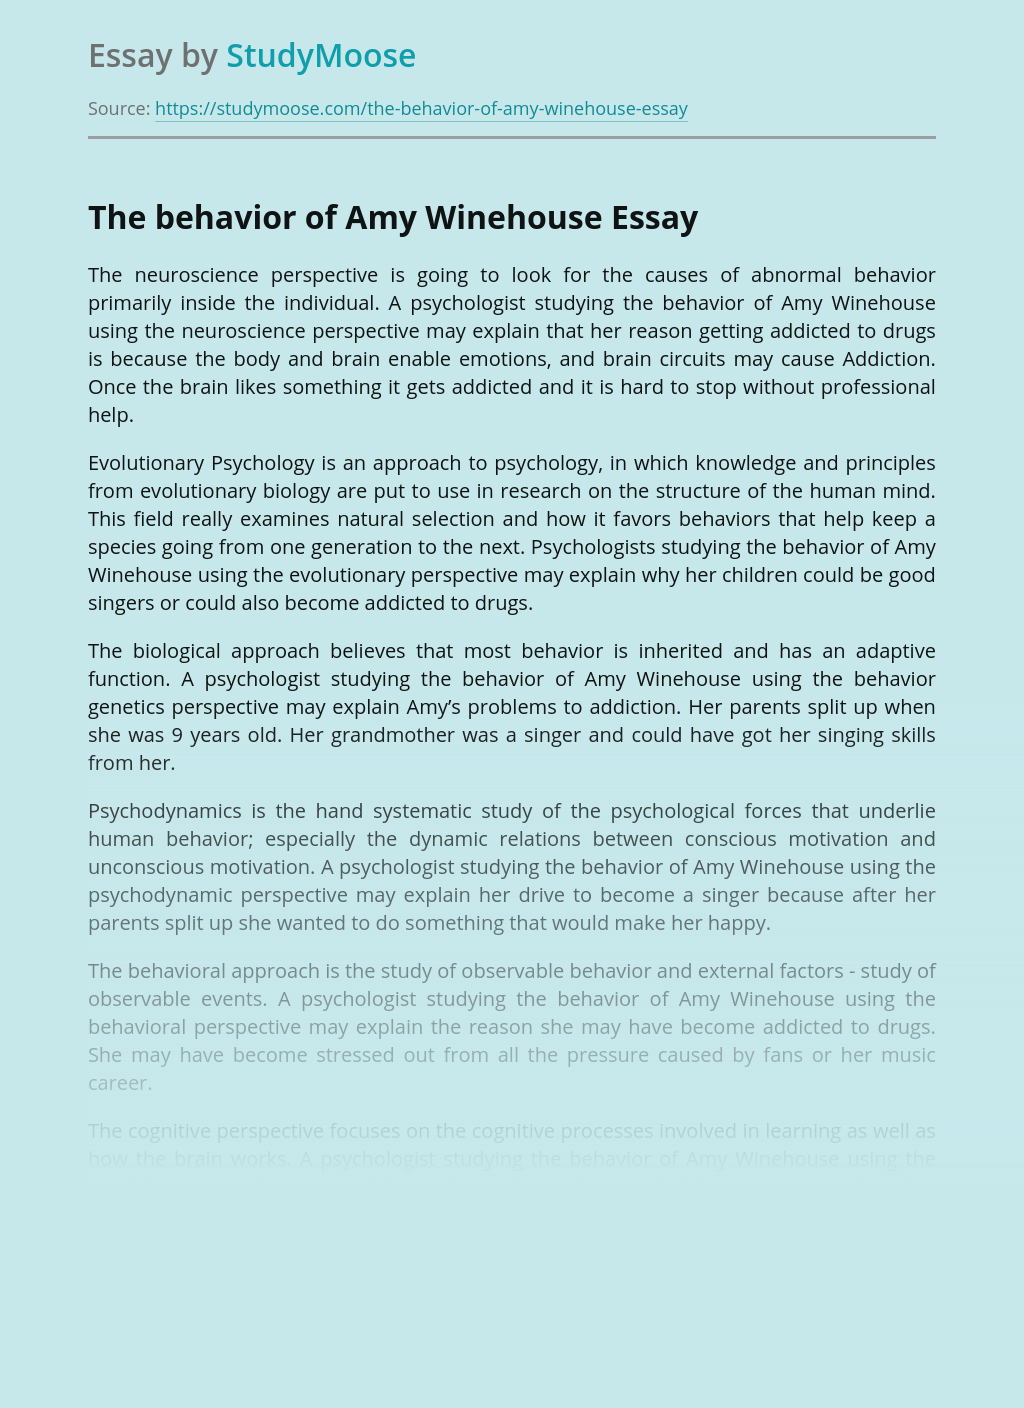 The behavior of Amy Winehouse